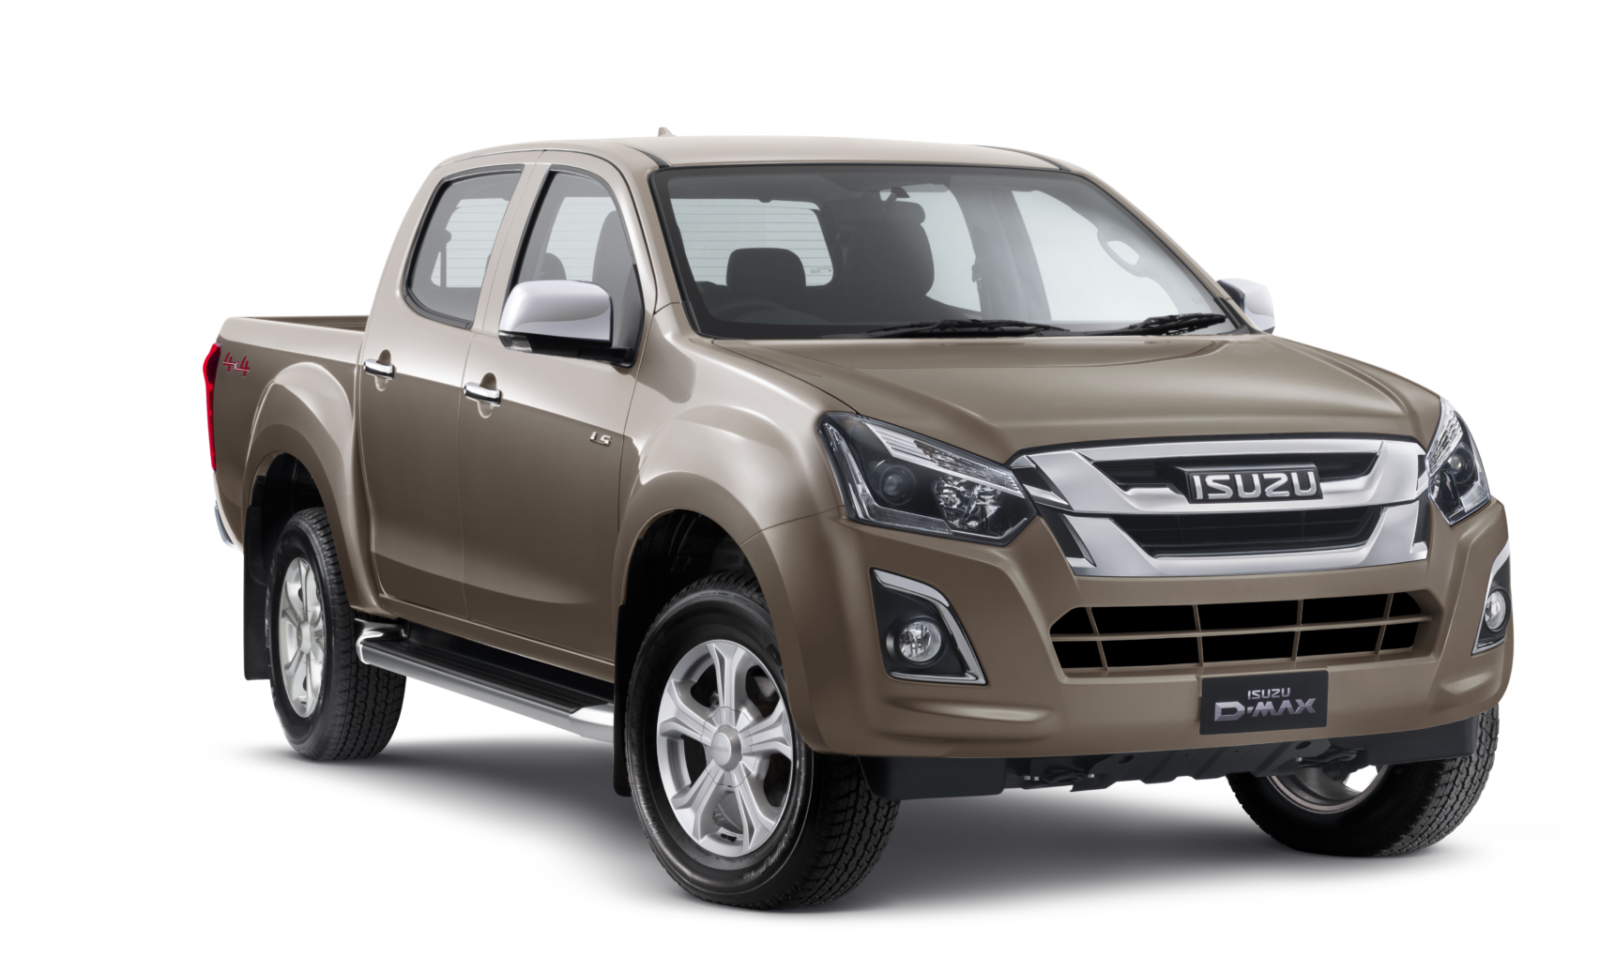 isuzu lease d max lease from 110 gst winger group nz. Black Bedroom Furniture Sets. Home Design Ideas